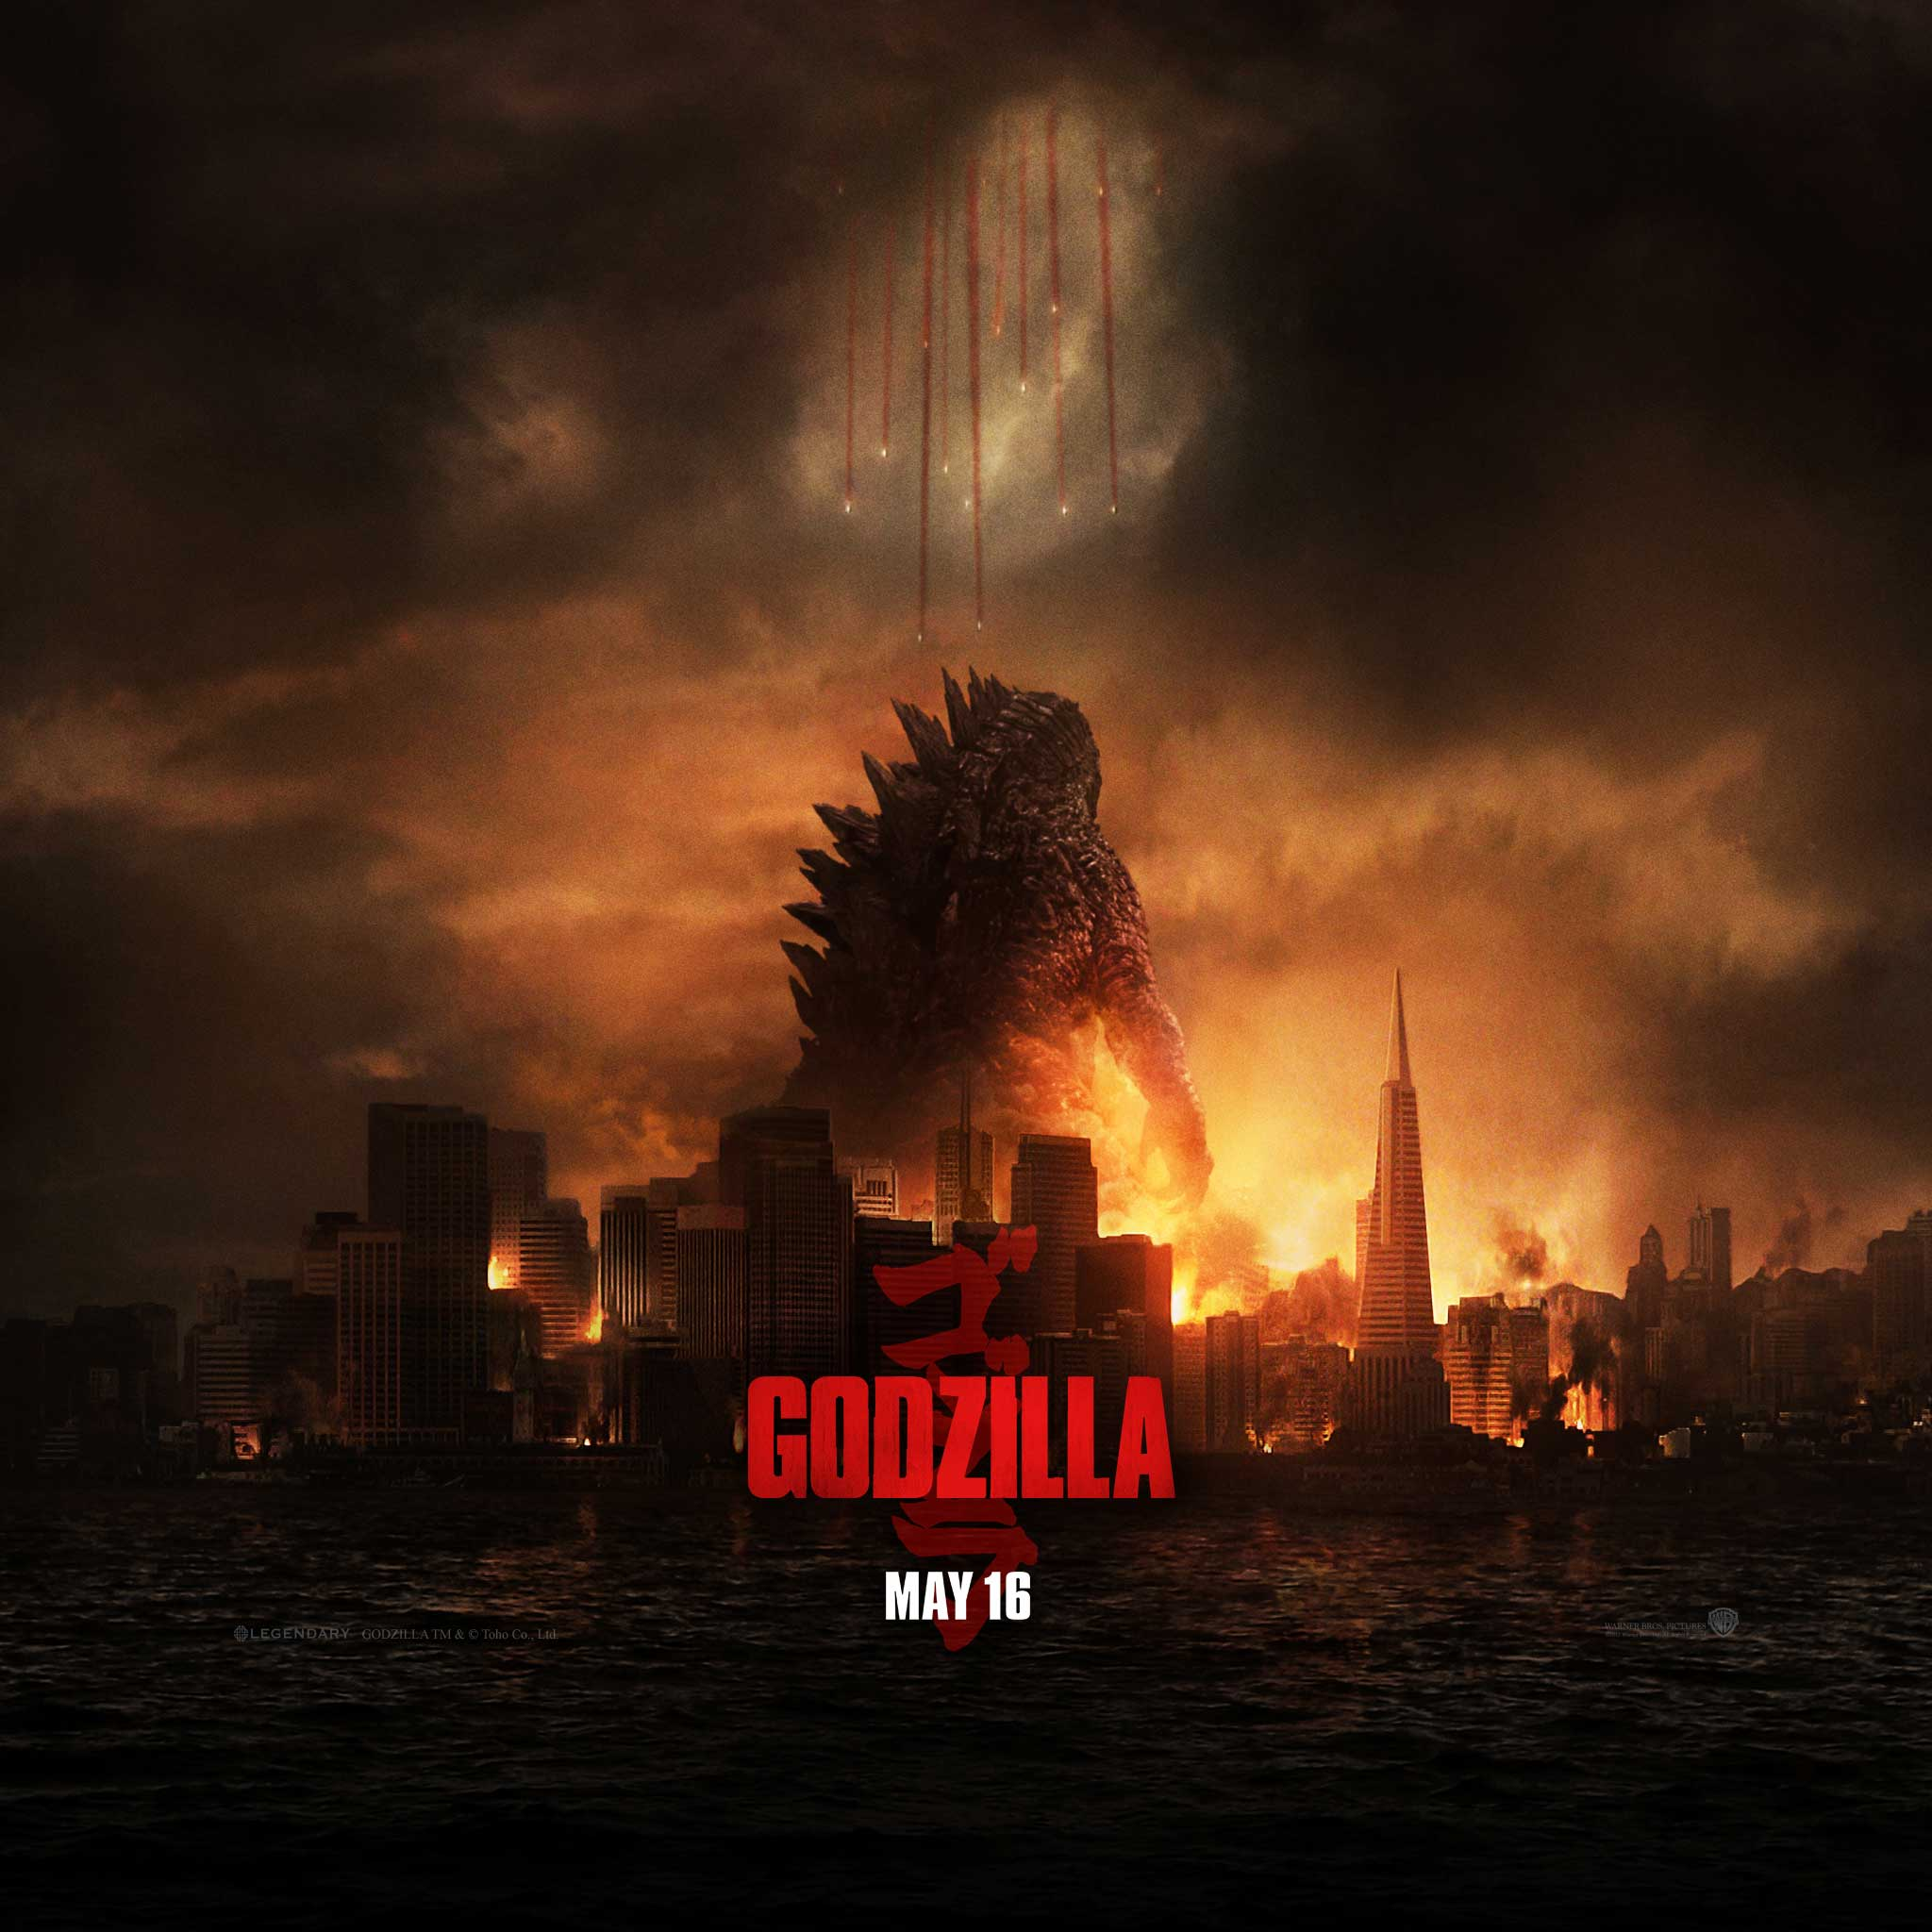 Godzilla Movie 2014 HD iPhone iPad Wallpapers 2048x2048